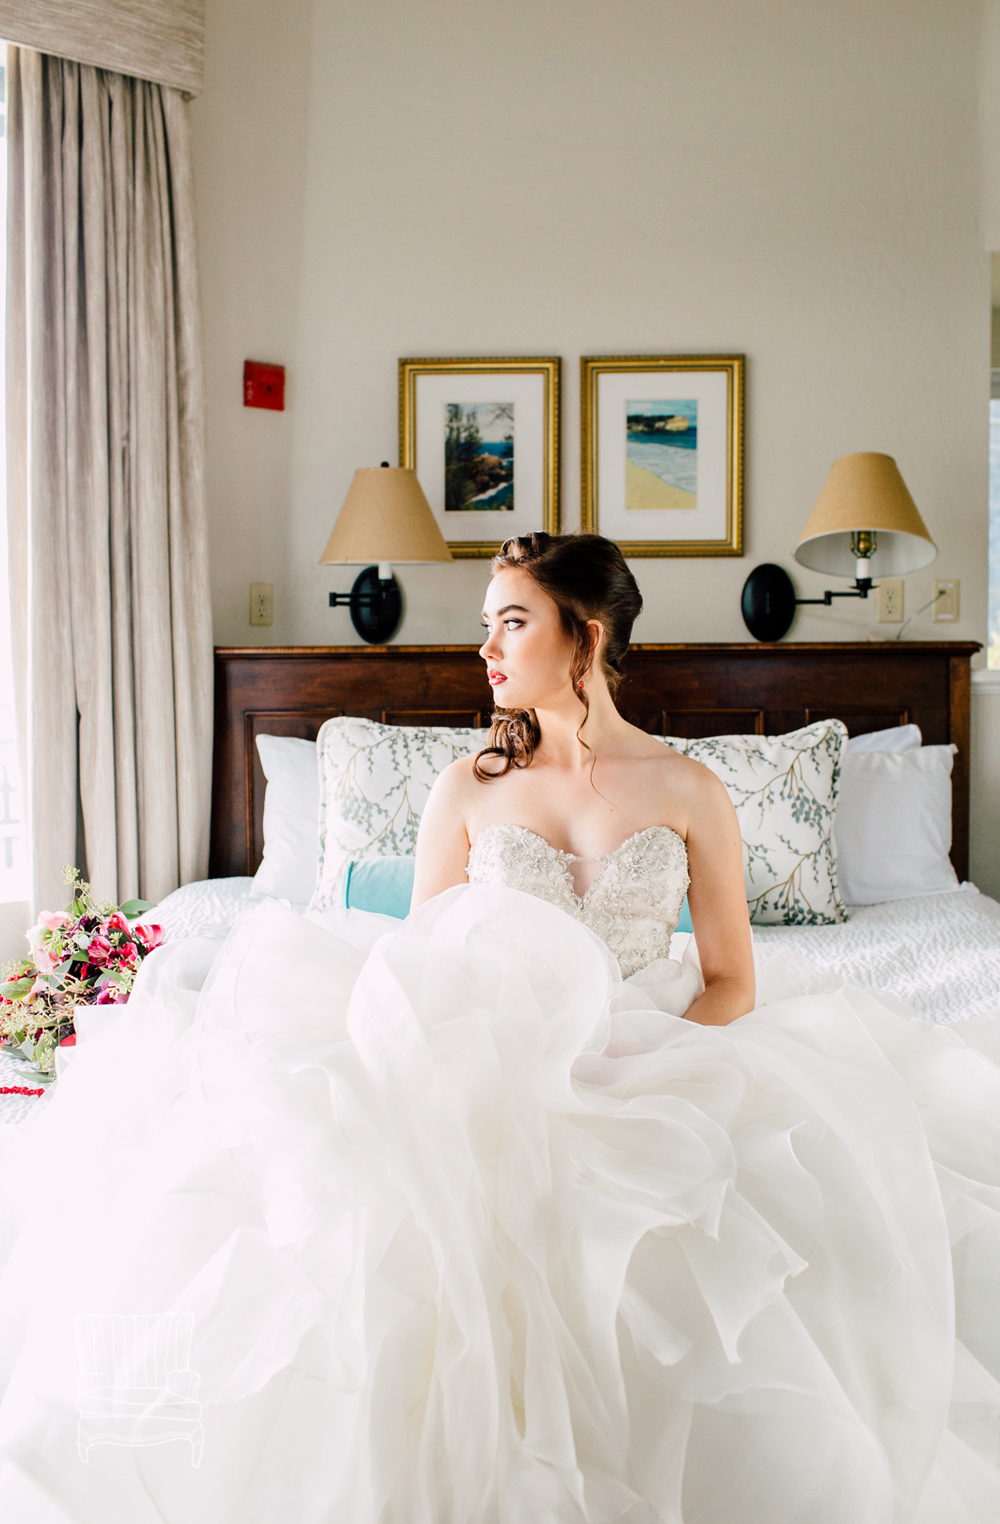 004-bellingham-wedding-photographer-katheryn-moran-bellwether-hotel-glitz-glam-styled-2016.jpg